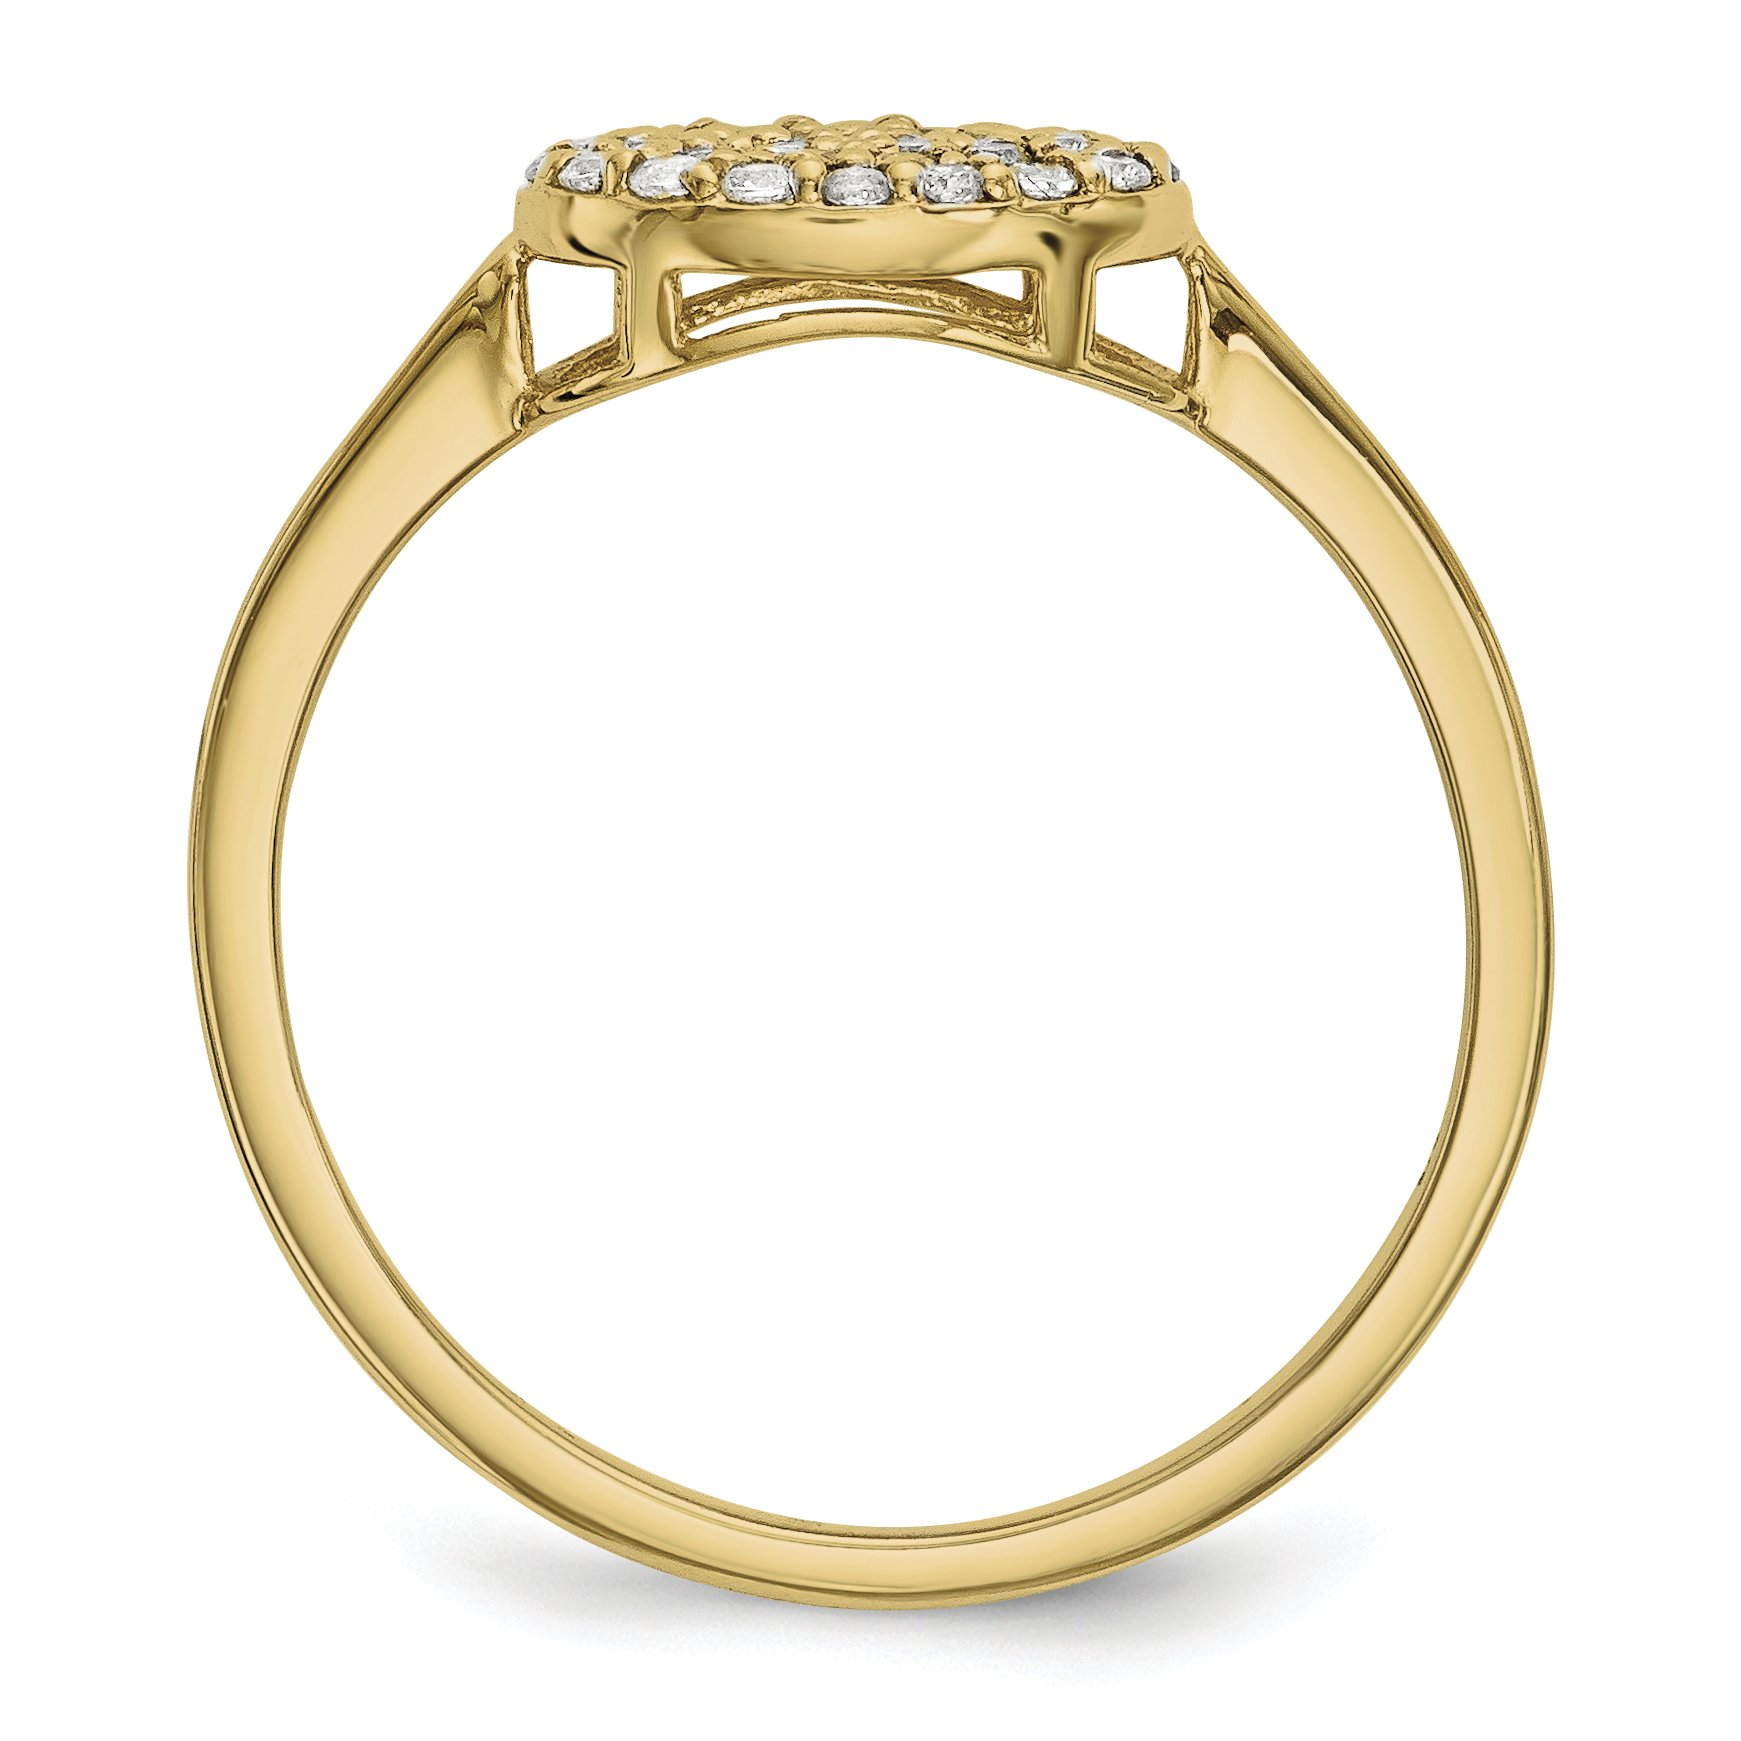 ICE CARATS 14k Yellow Gold Diamond Cluster Oval Band Ring Size 7.00 Fine Jewelry Gift Set For Women Heart by ICE CARATS (Image #2)